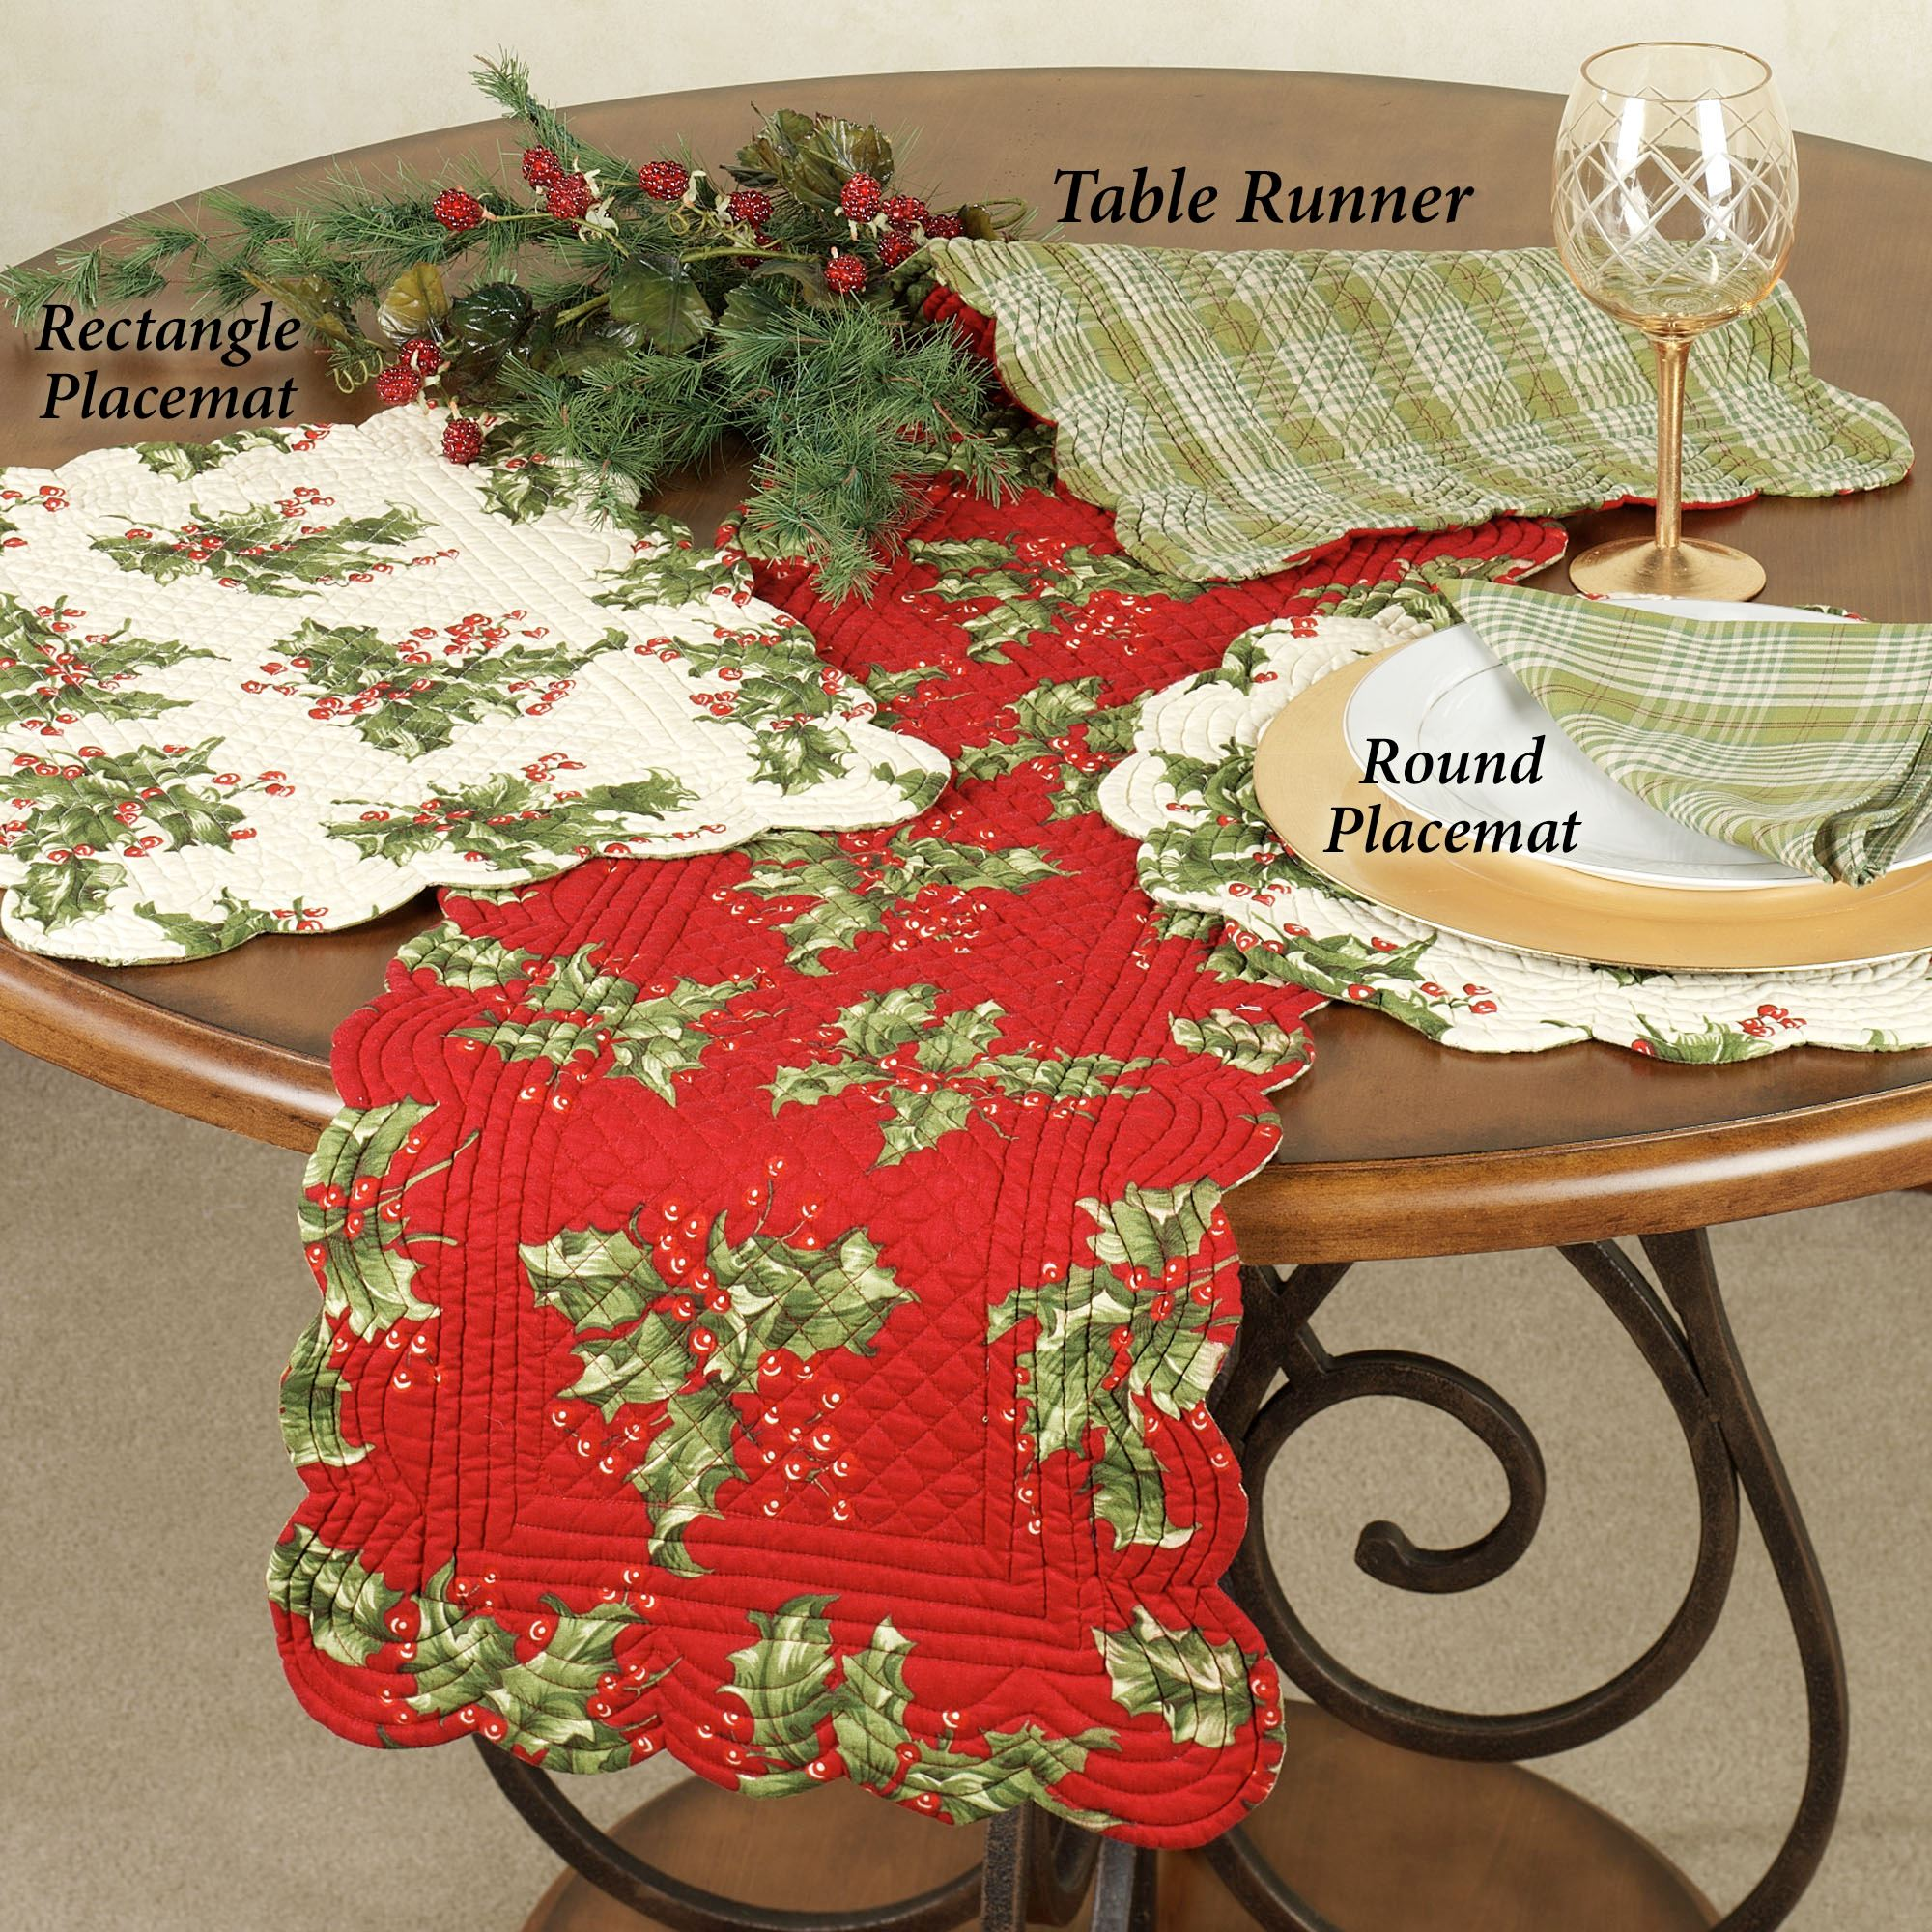 touch to zoom - Christmas Placemats And Napkins